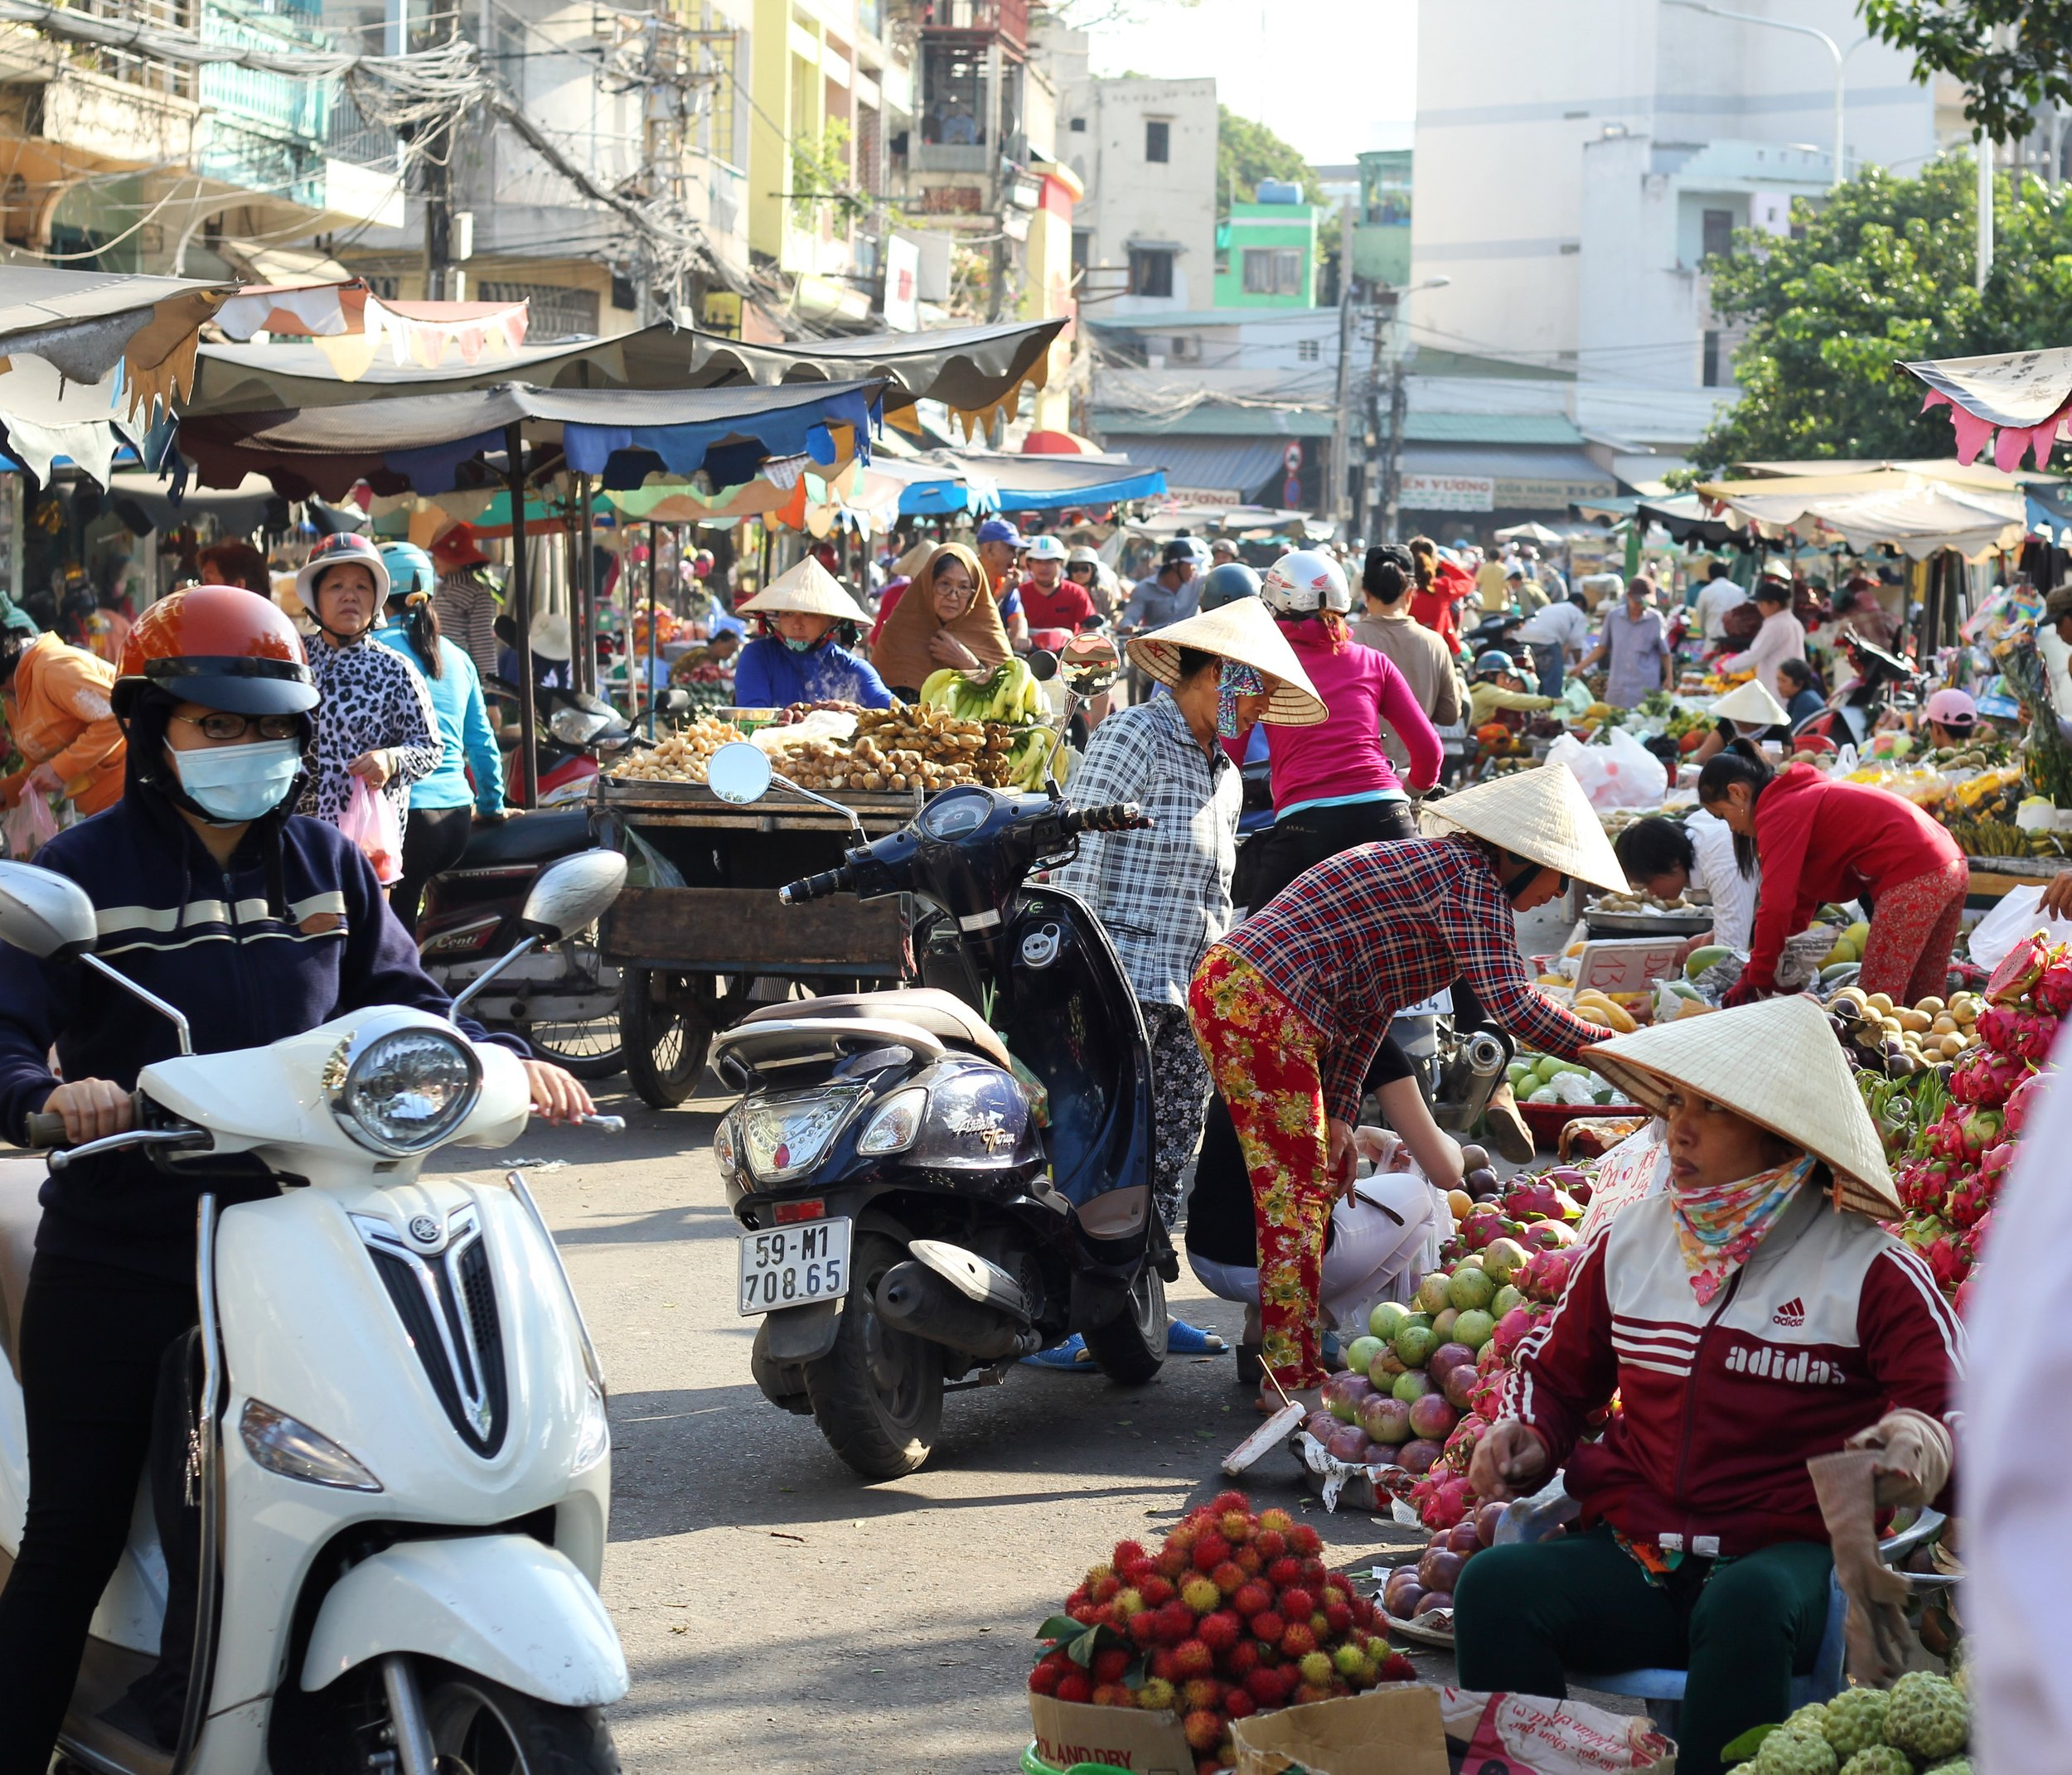 The bustling morning market in the Cholon District of Ho Chi Minh City.